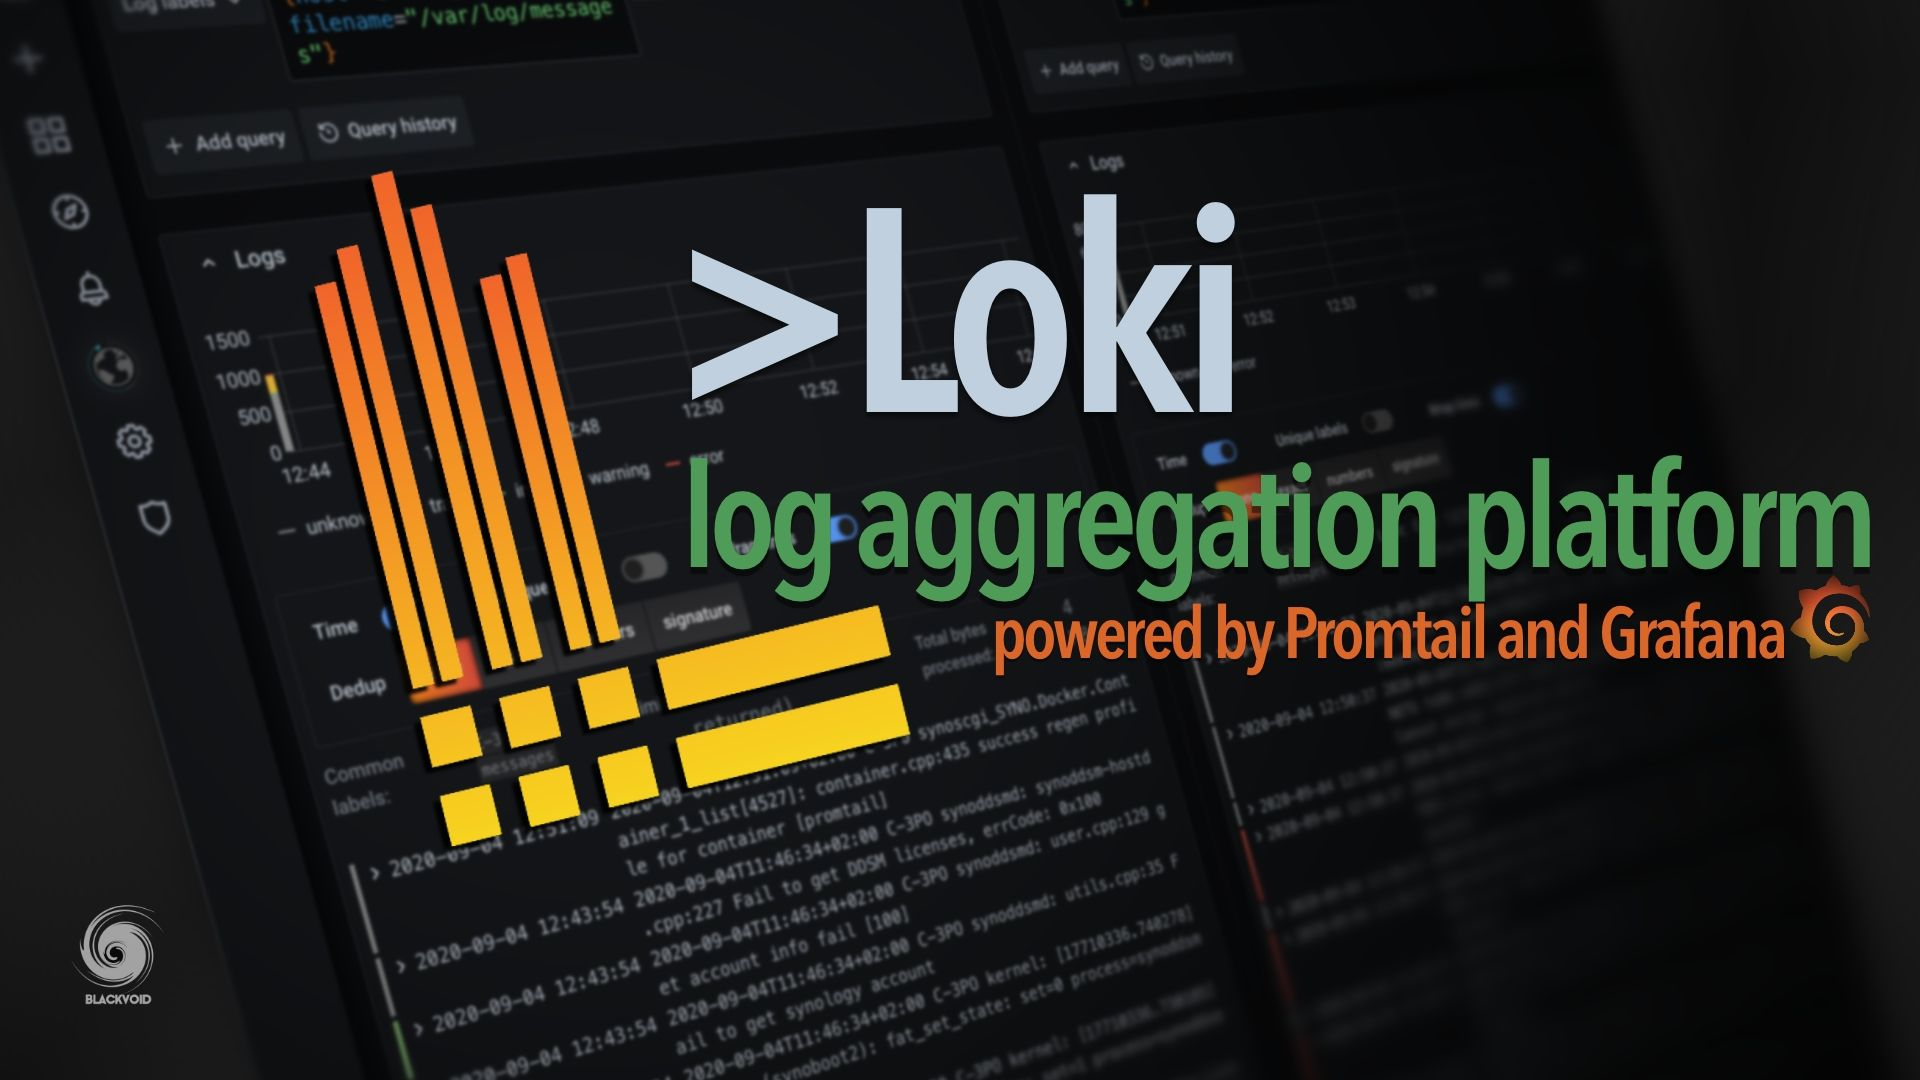 Loki - log aggregation platform from the creators of Grafana